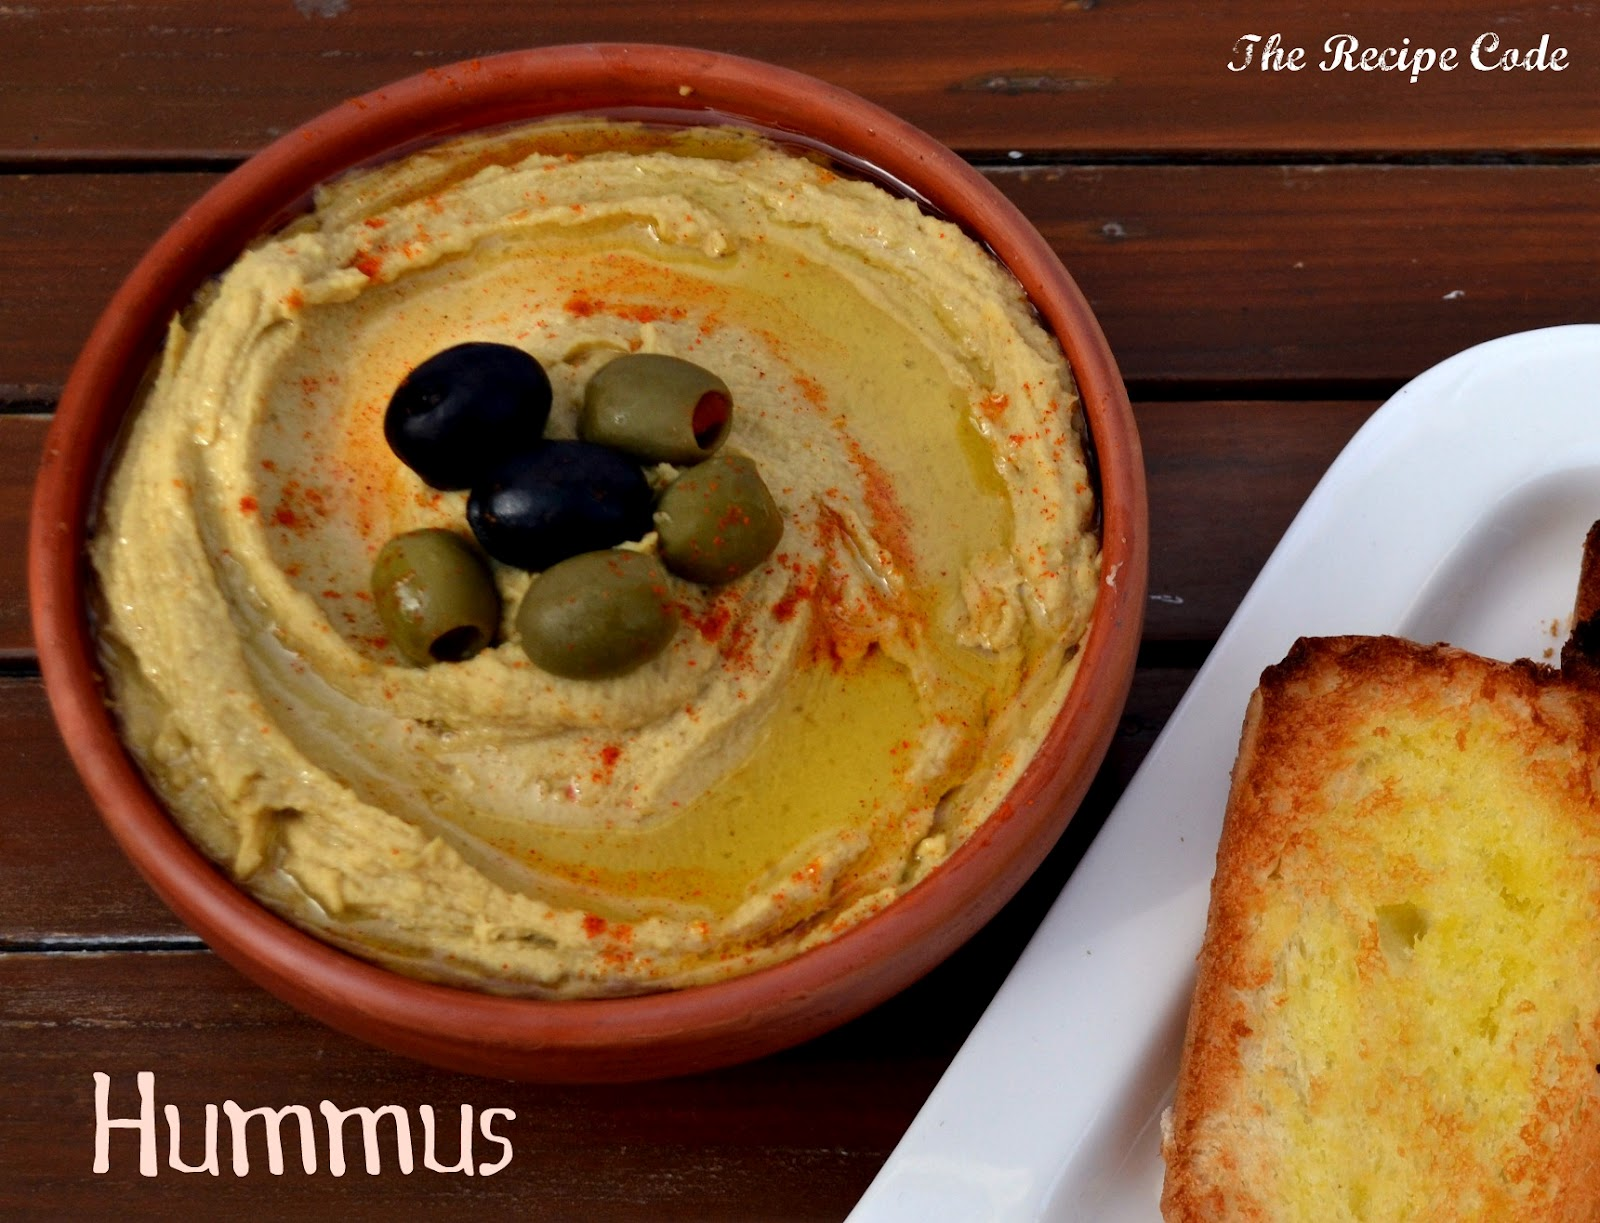 The Recipe Code: Hummus